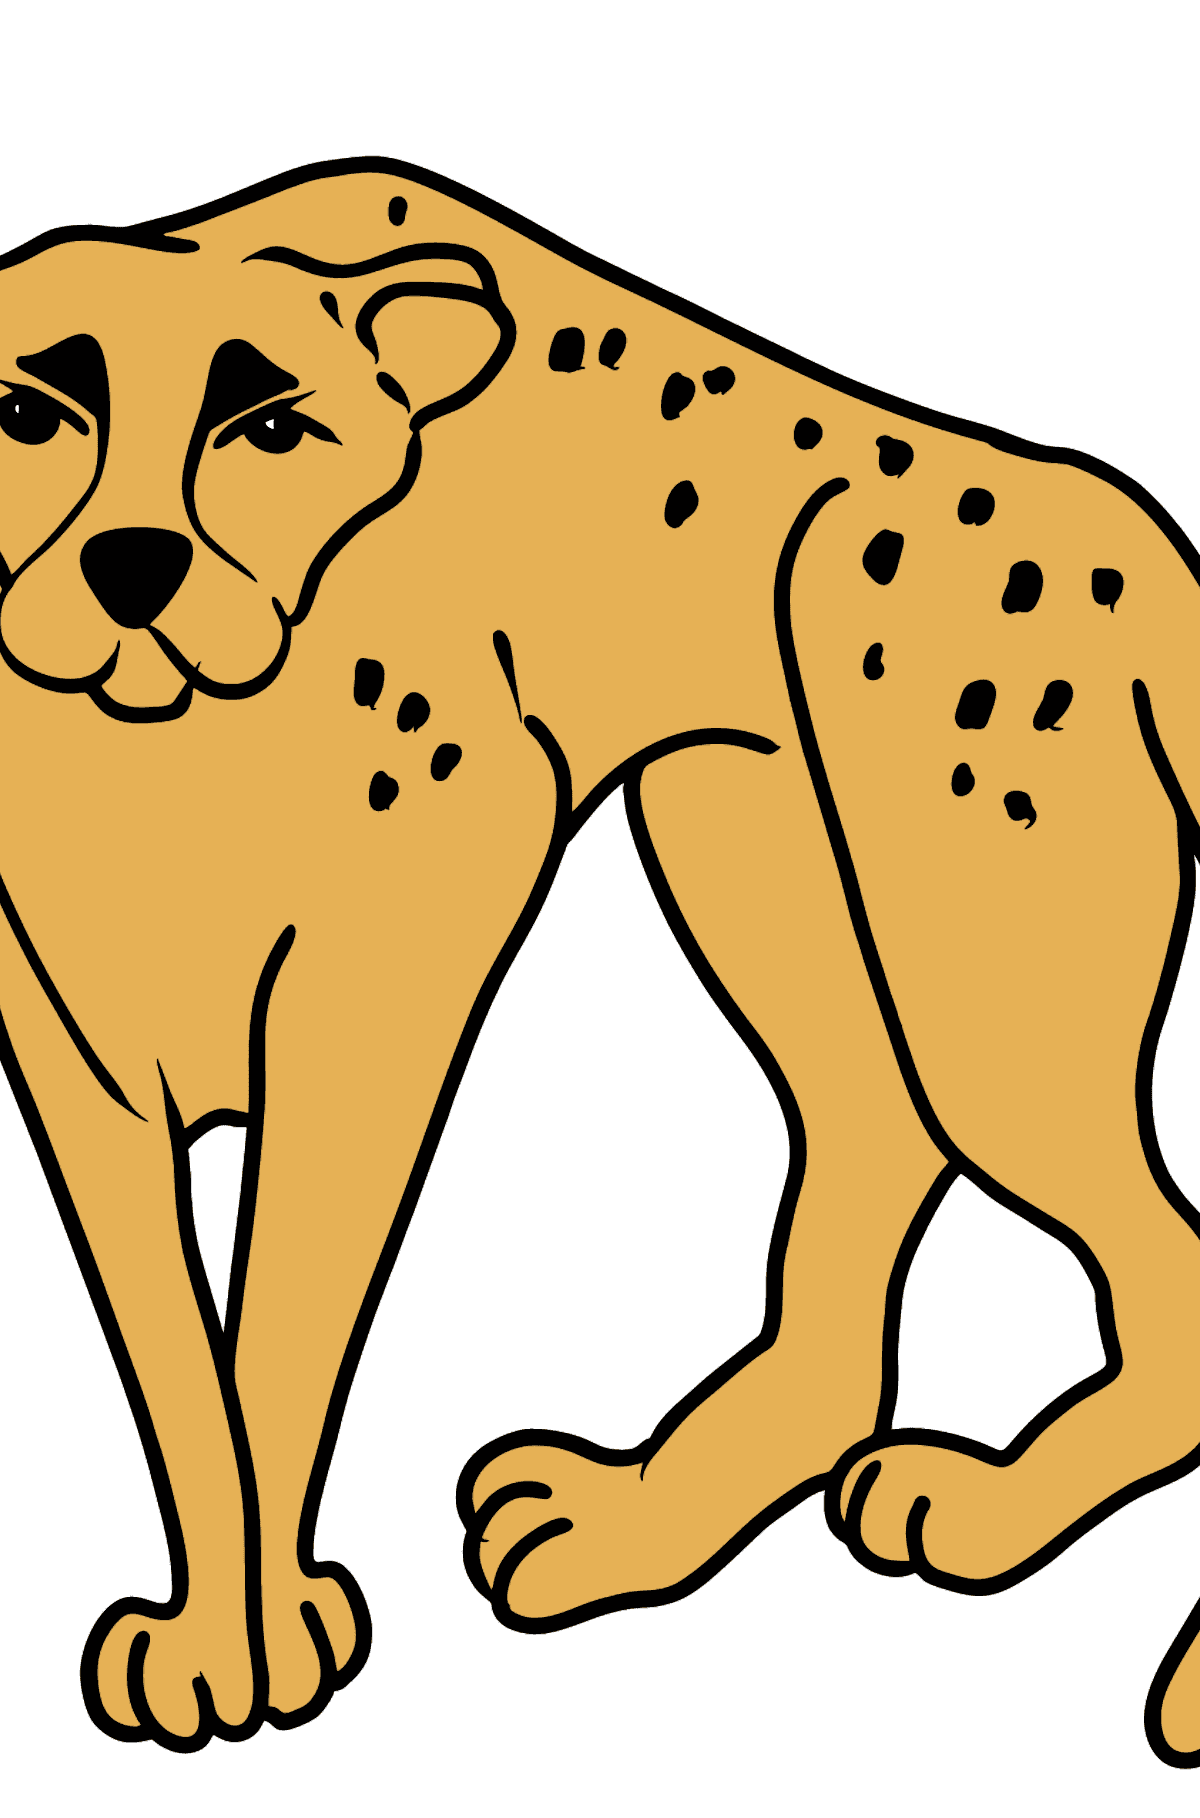 Cheetah coloring page - Coloring Pages for Kids